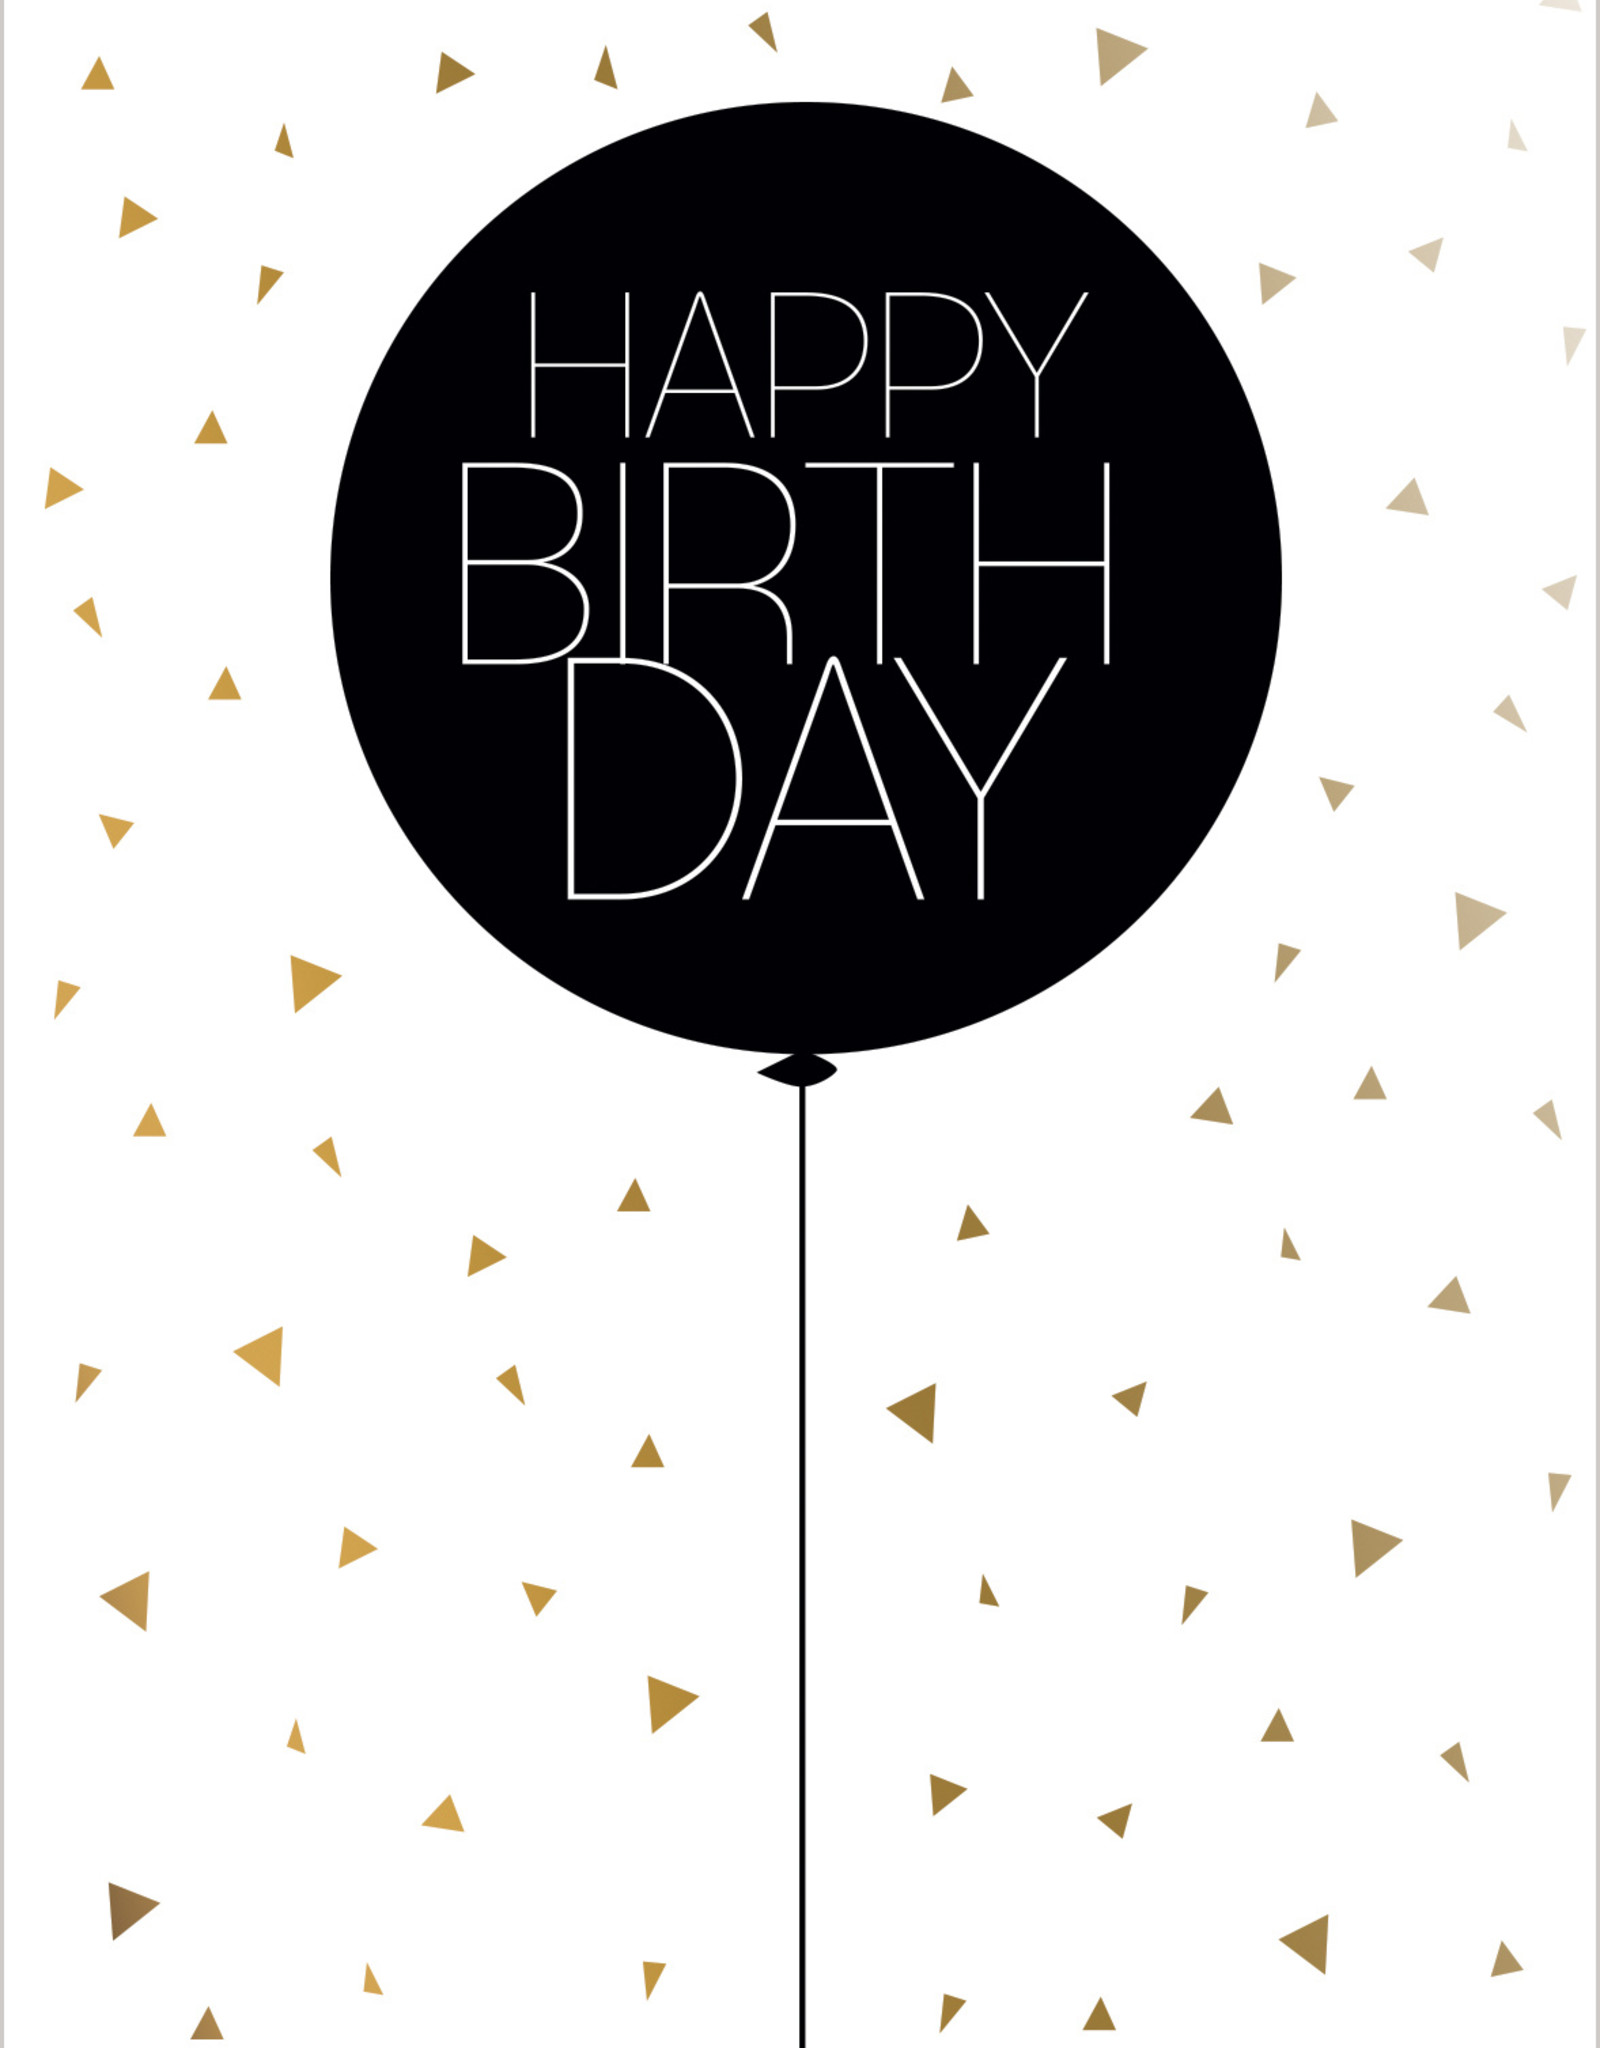 Pictura Pictura - From Me To You Birthday Card 05043